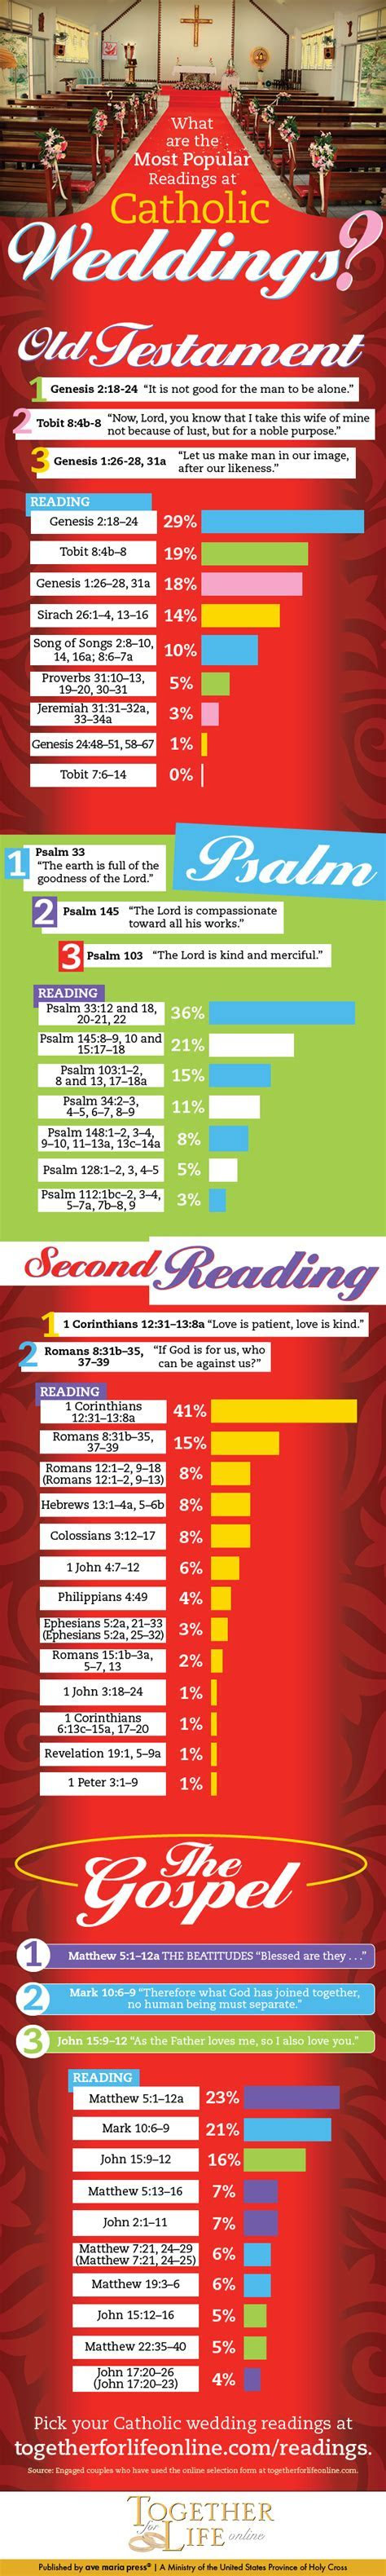 The Most Popular Catholic Wedding Readings (Infographic